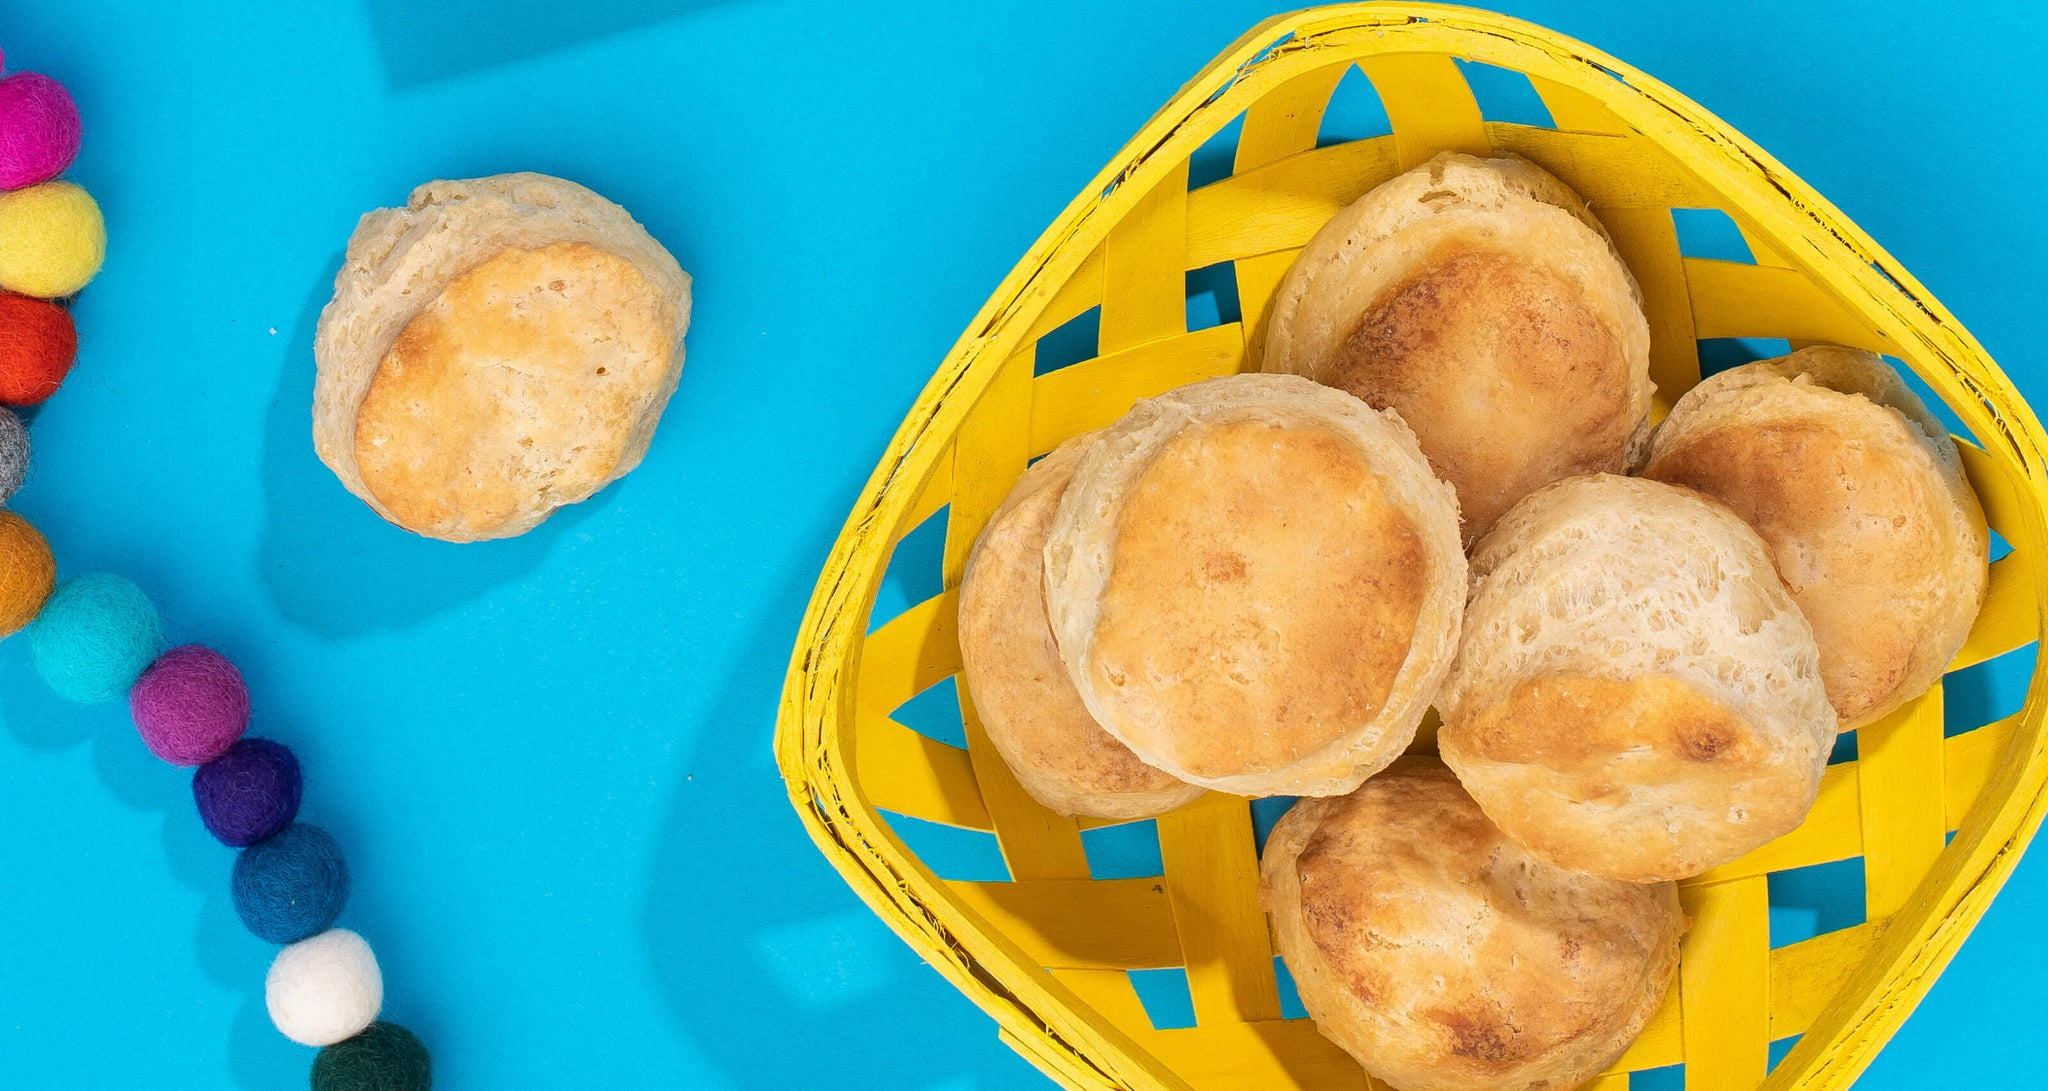 Tips And Tricks For Baking The Perfect Biscuit